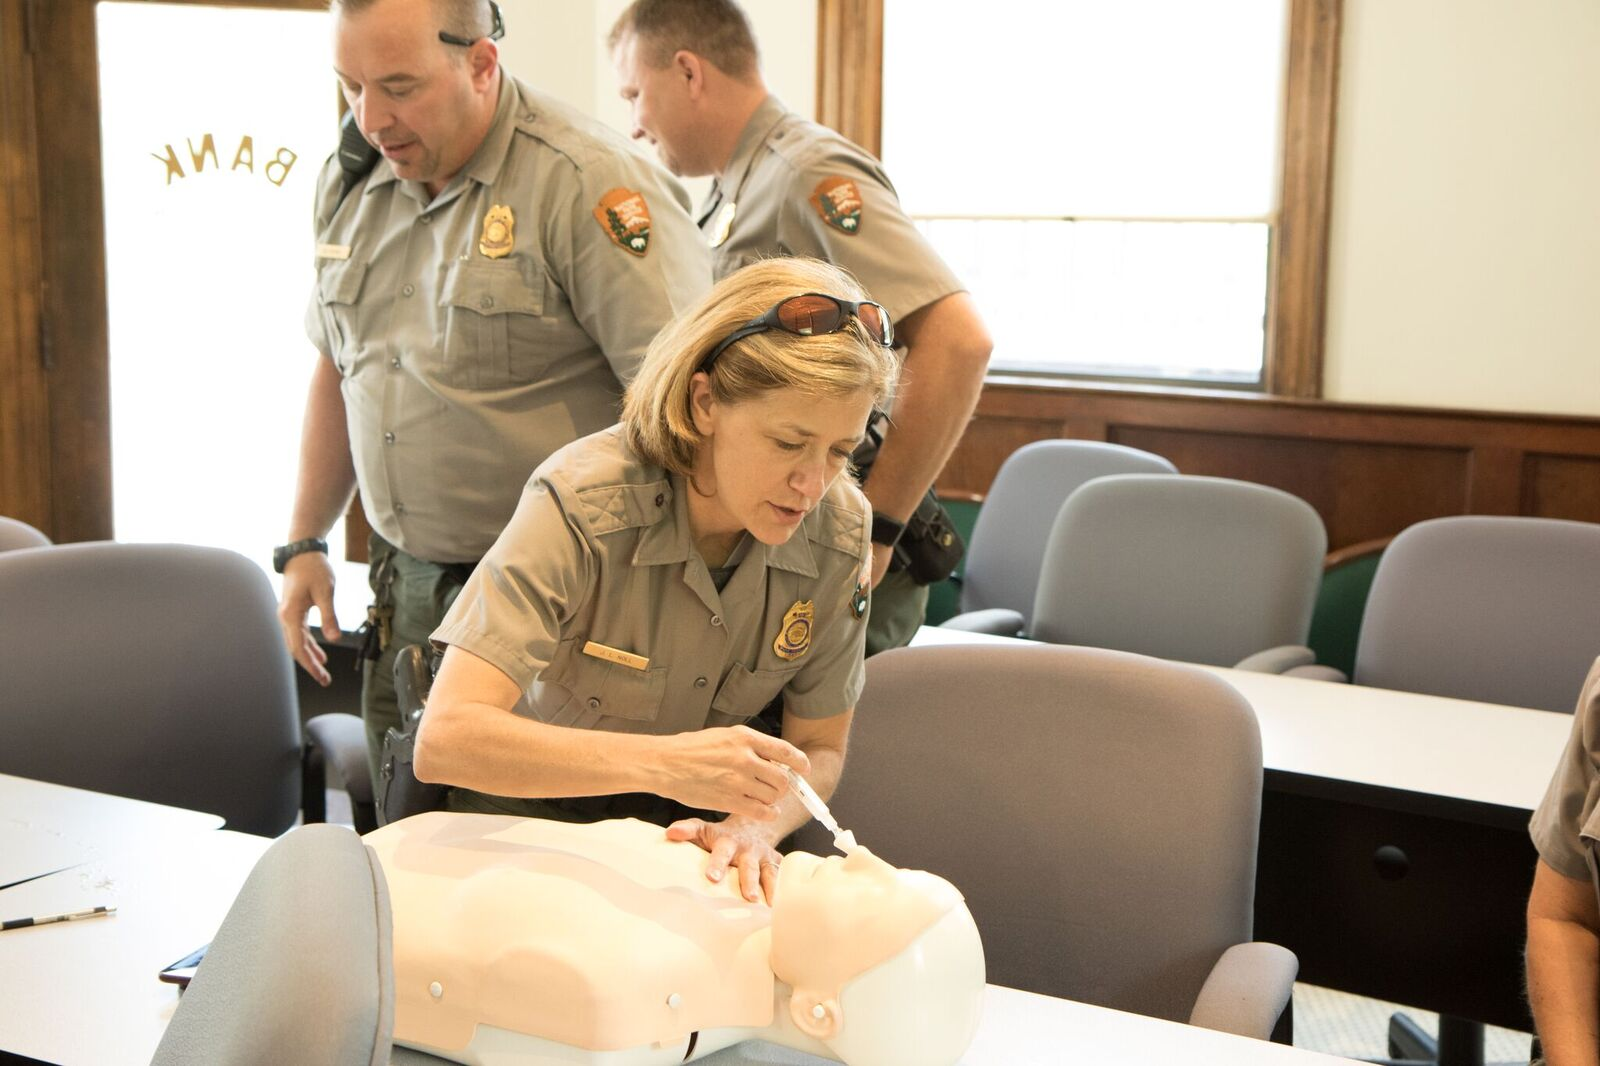 New River Gorge National River Ranger Jenny Noll practices administering intranasal naloxone using a saline solution during a training session.